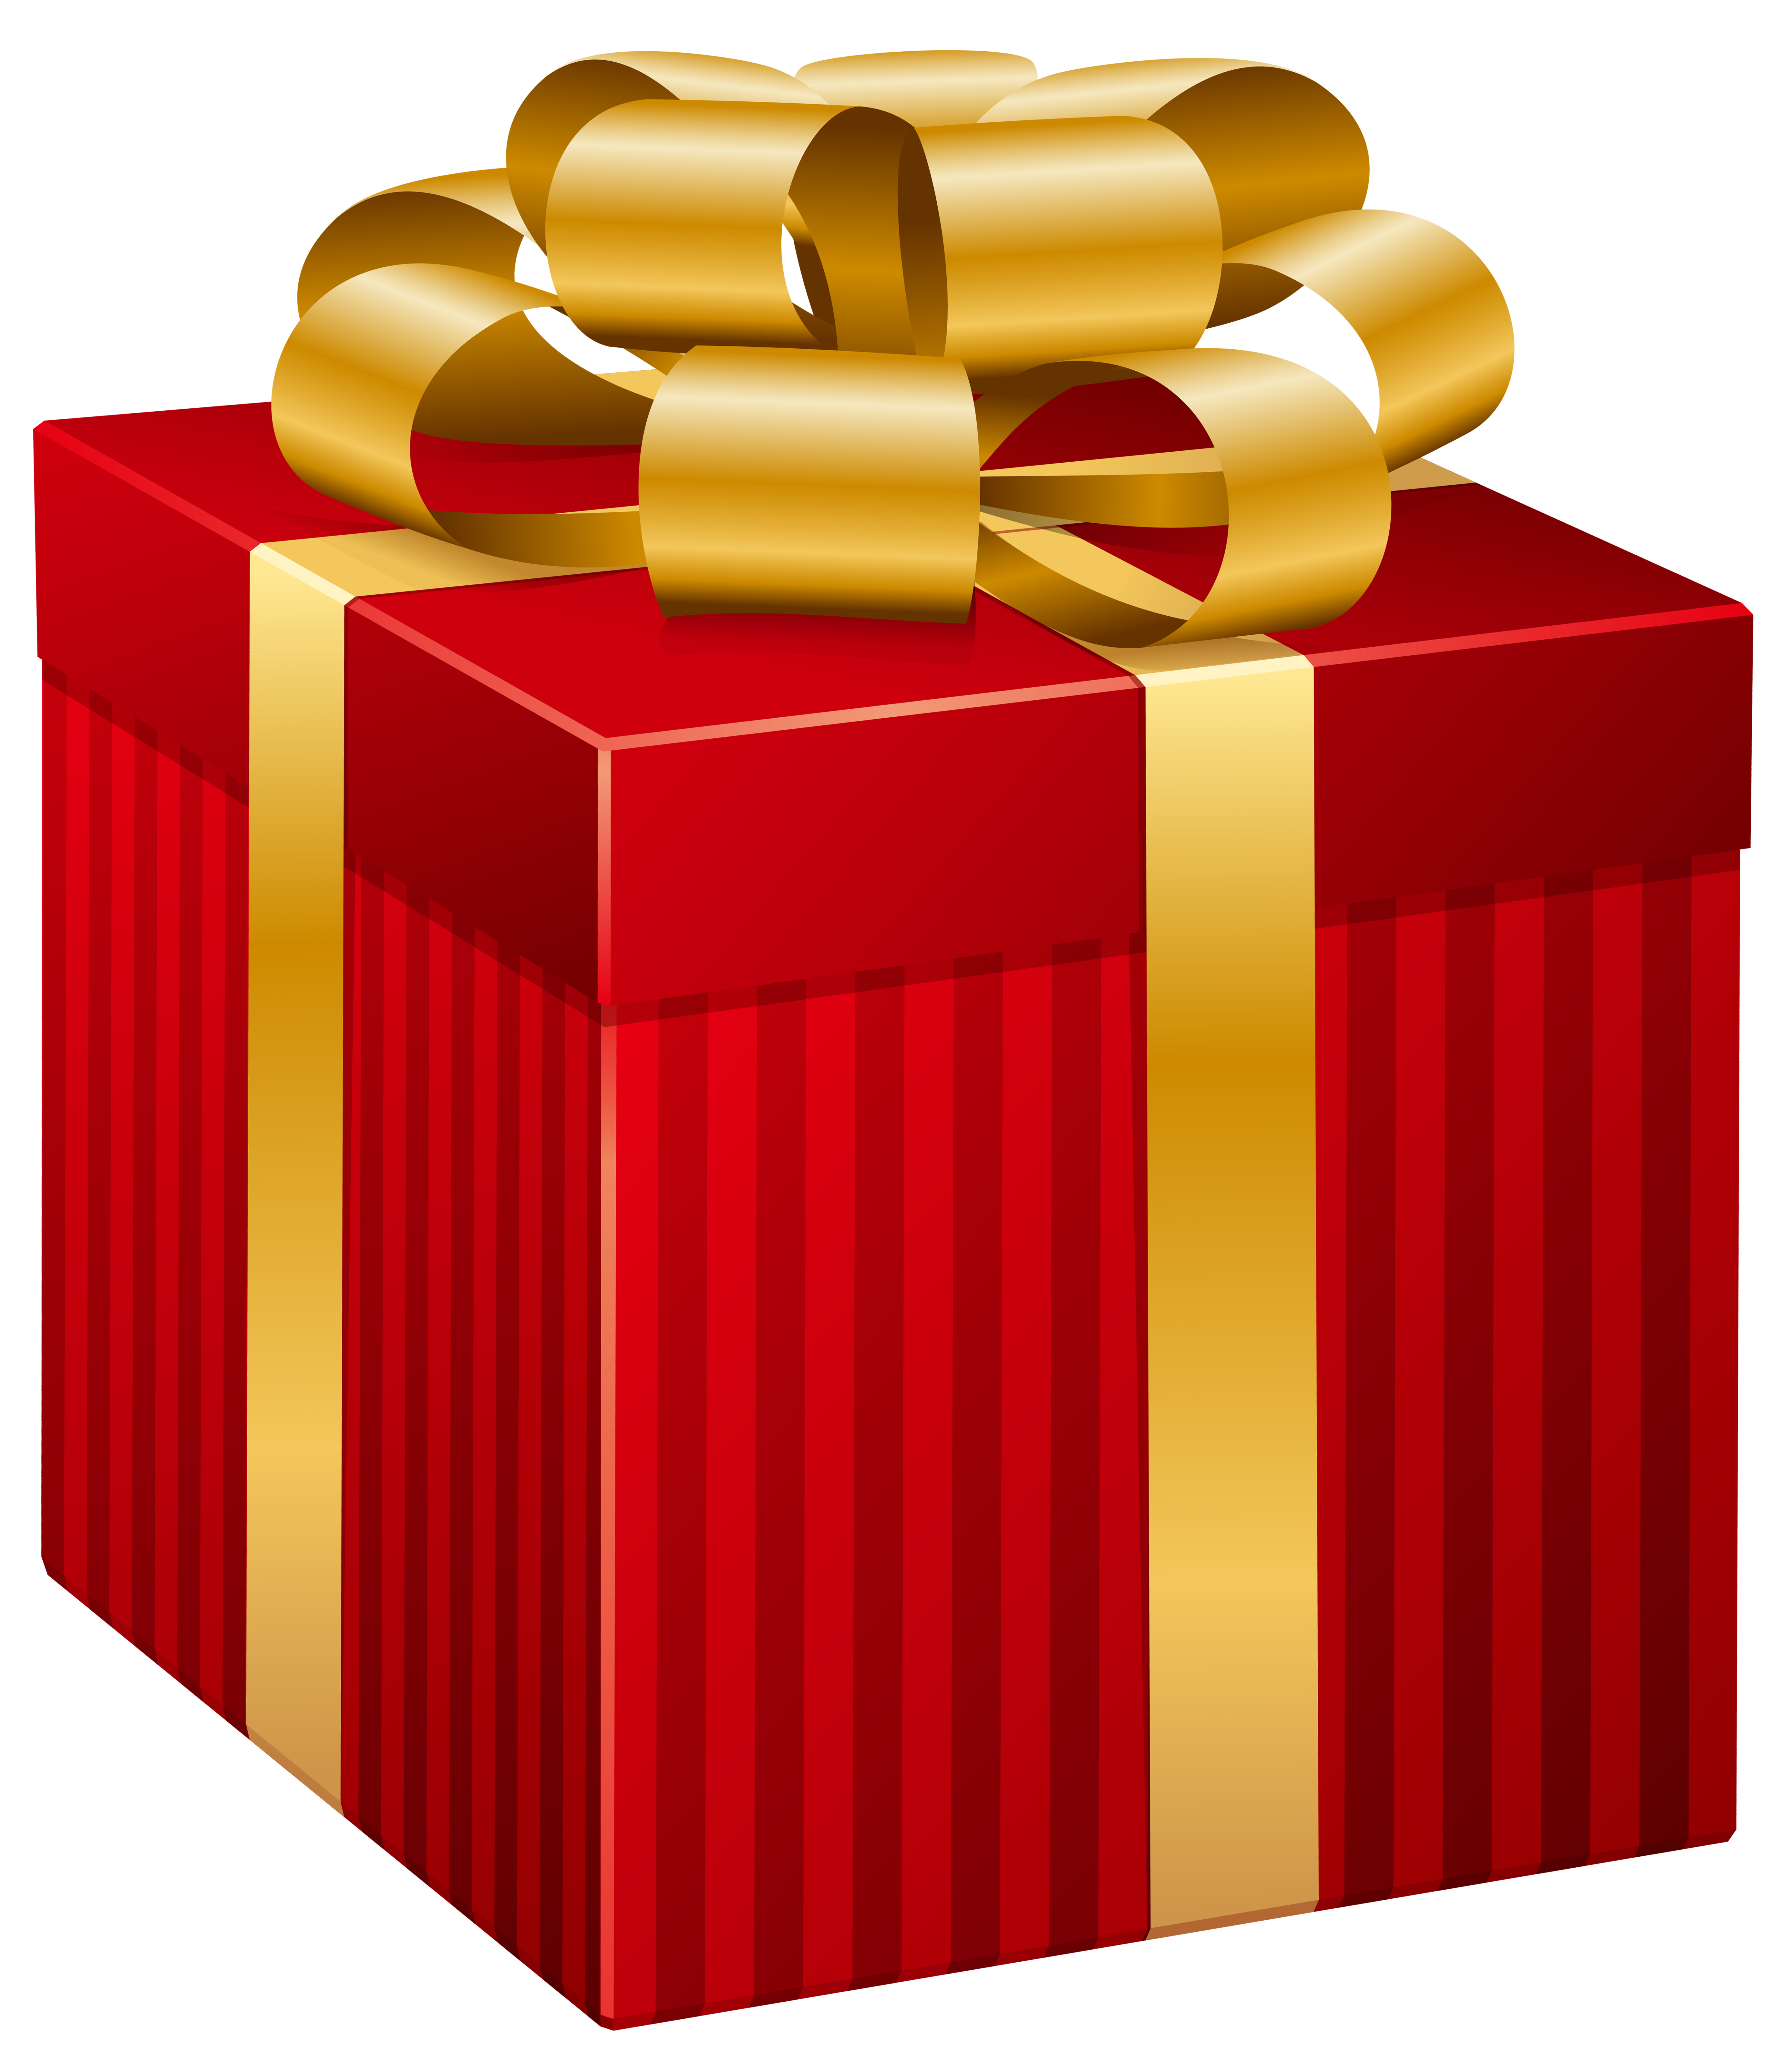 Red striped gift png. Clipart box quality